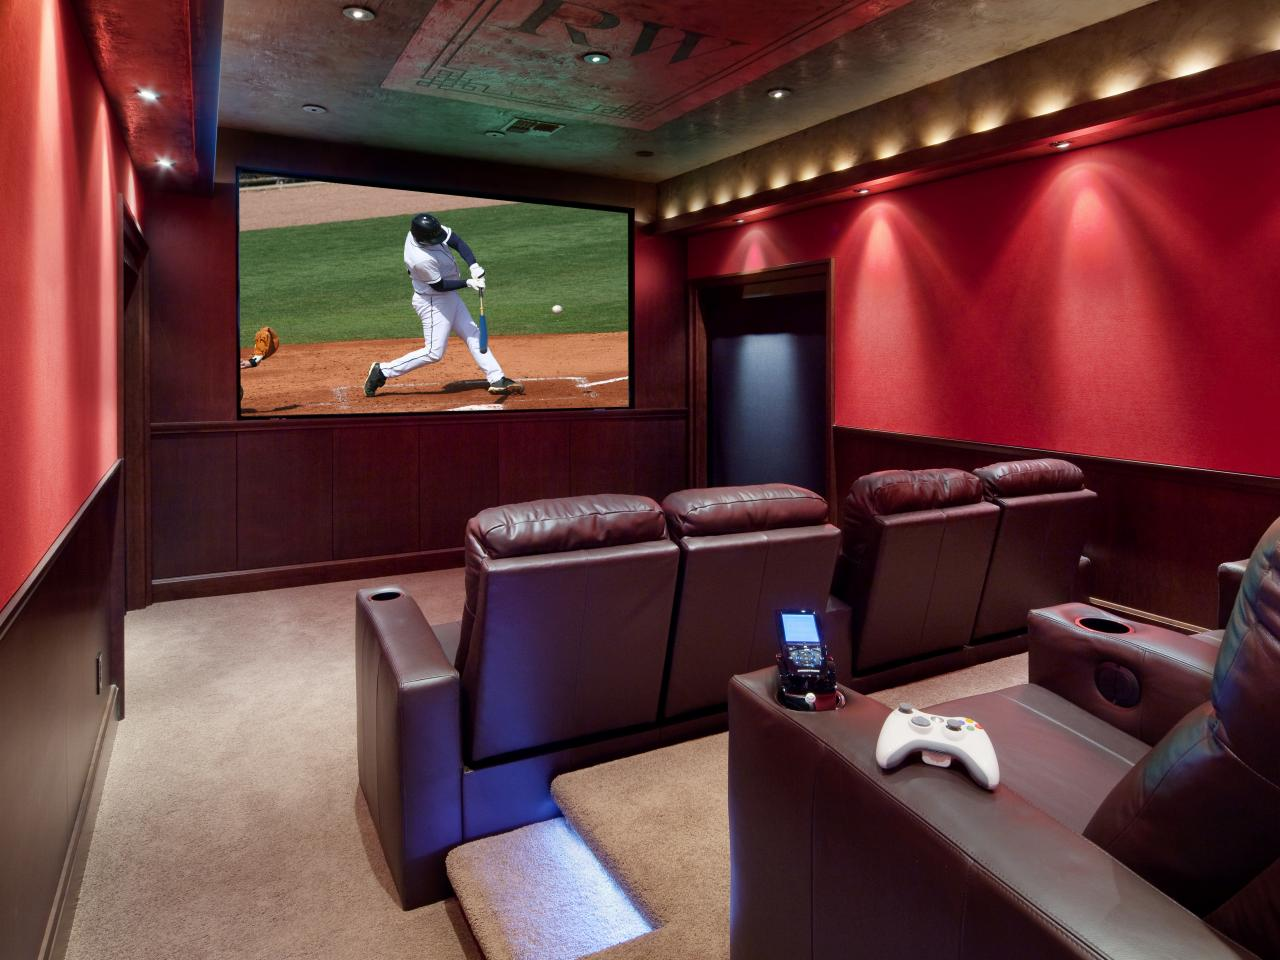 Home Theater Room Design Ideas 1000 images about house plans with home theater on pinterest home theaters home theater design and home theatre Beneath The Stars